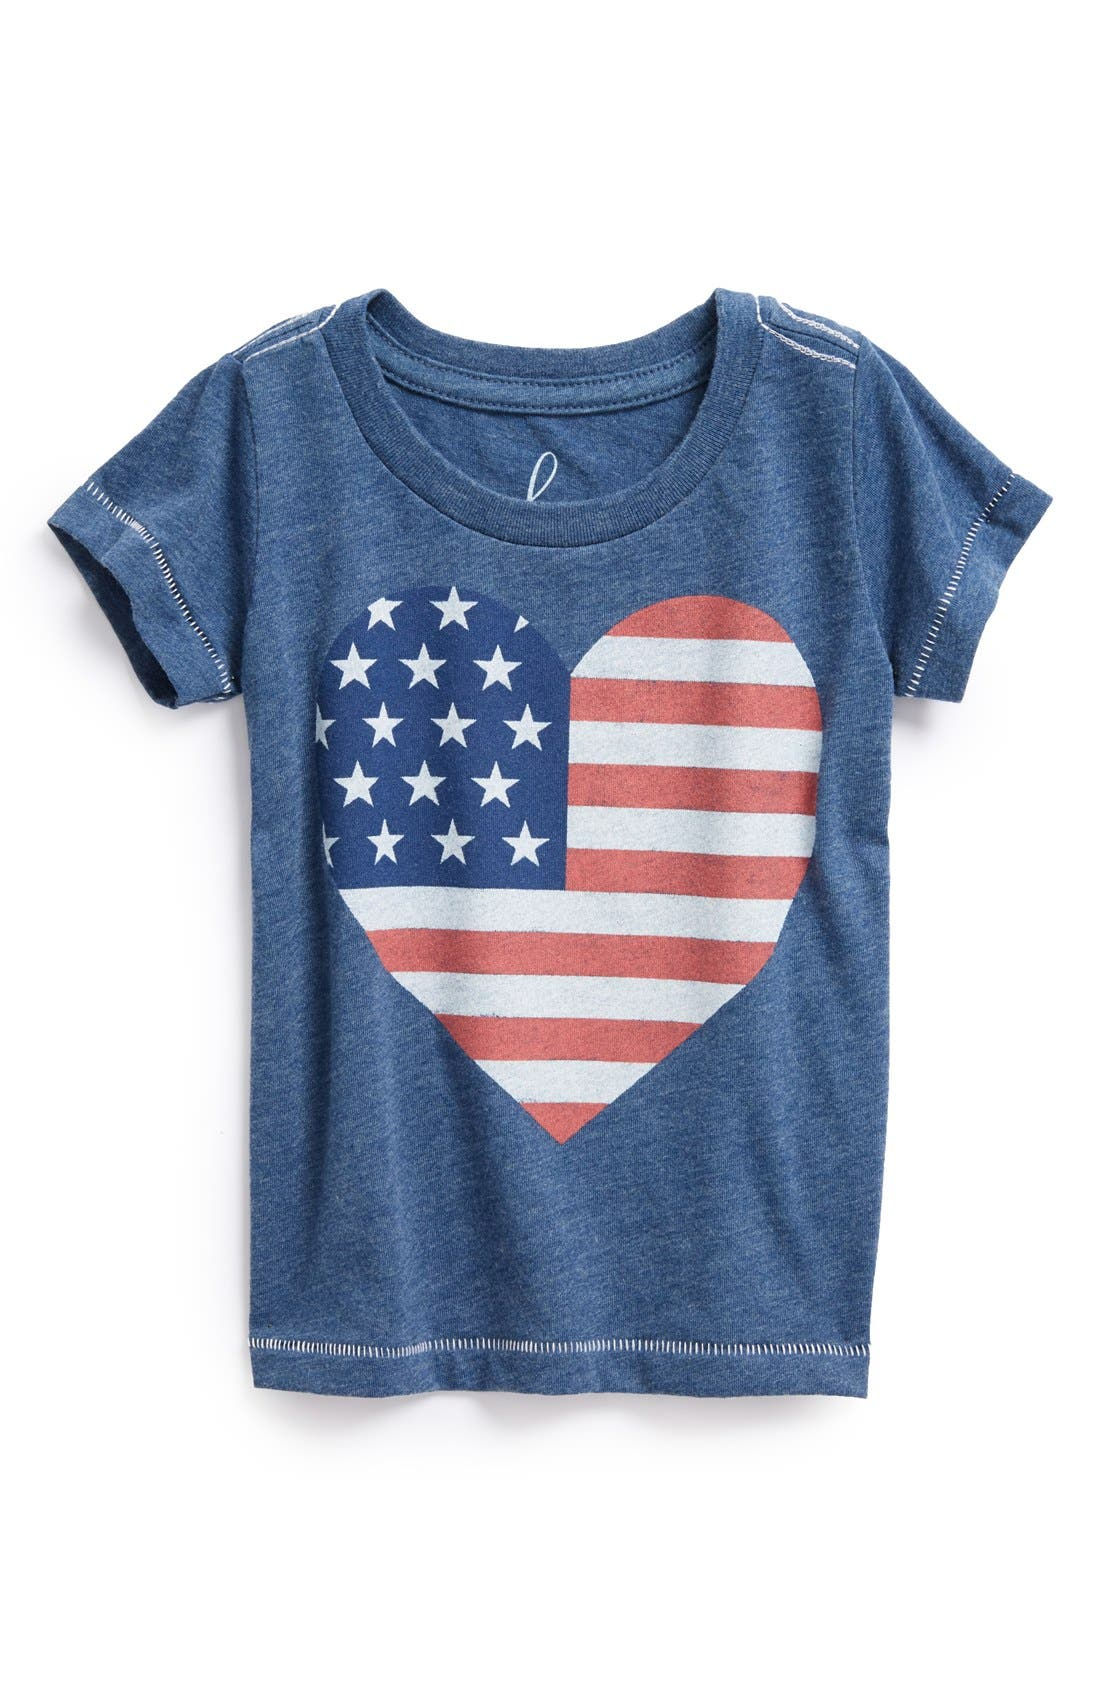 Main Image - Peek 'Love America' Heart American Flag Screenprint Tee (Baby Girls)